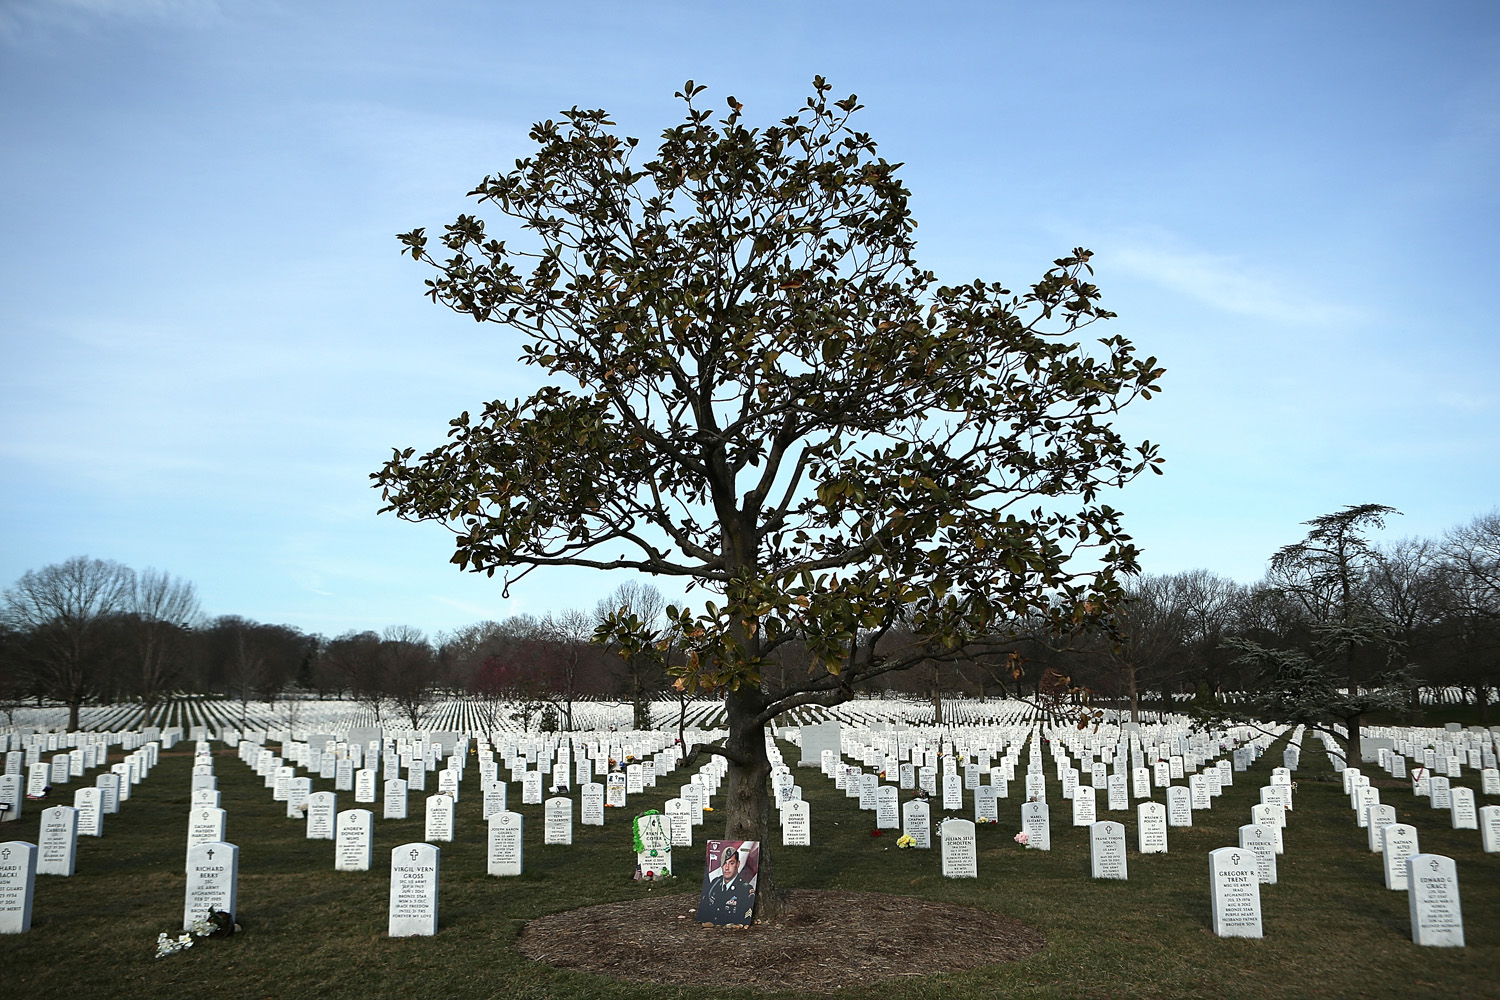 March 15, 2013. A portrait of U.S. Army Sgt. Alessandro L. Plutino rests at the base of a tree in Section 60 at Arlington National Cemetery in Arlington, Va.